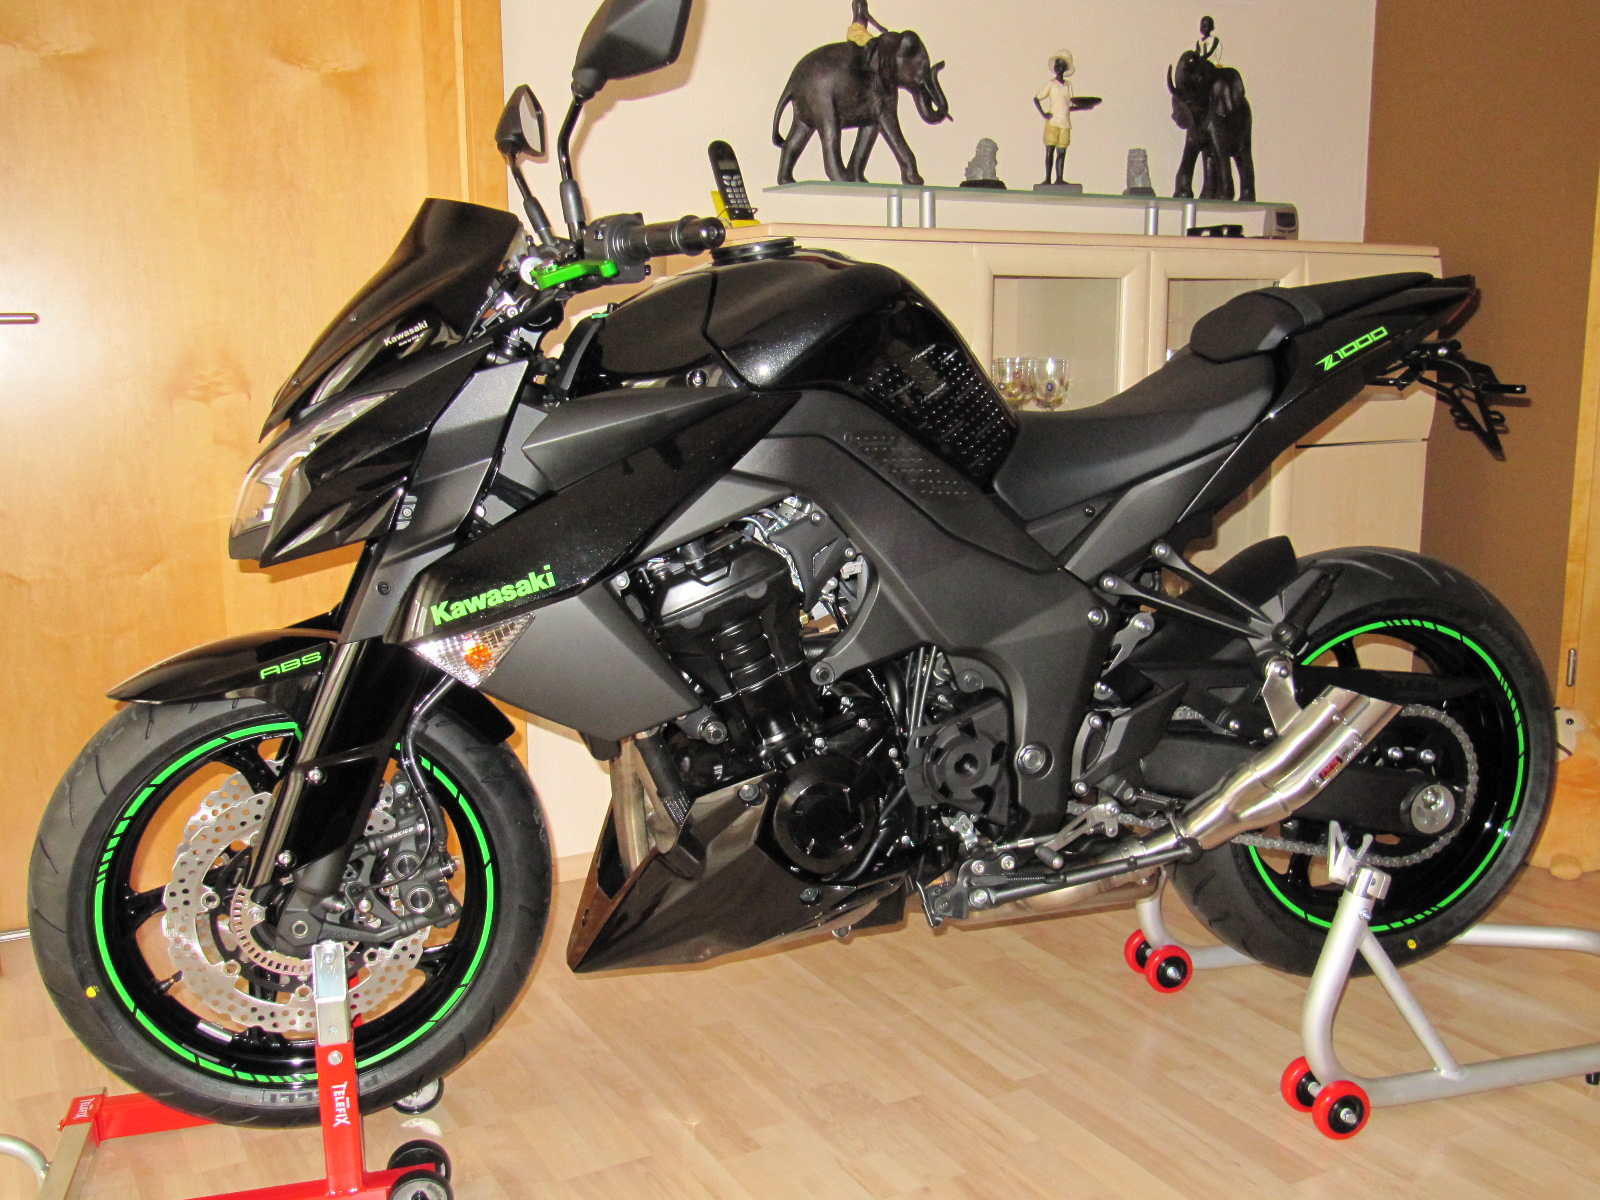 kawasaki gr n folie motorrad bild idee. Black Bedroom Furniture Sets. Home Design Ideas